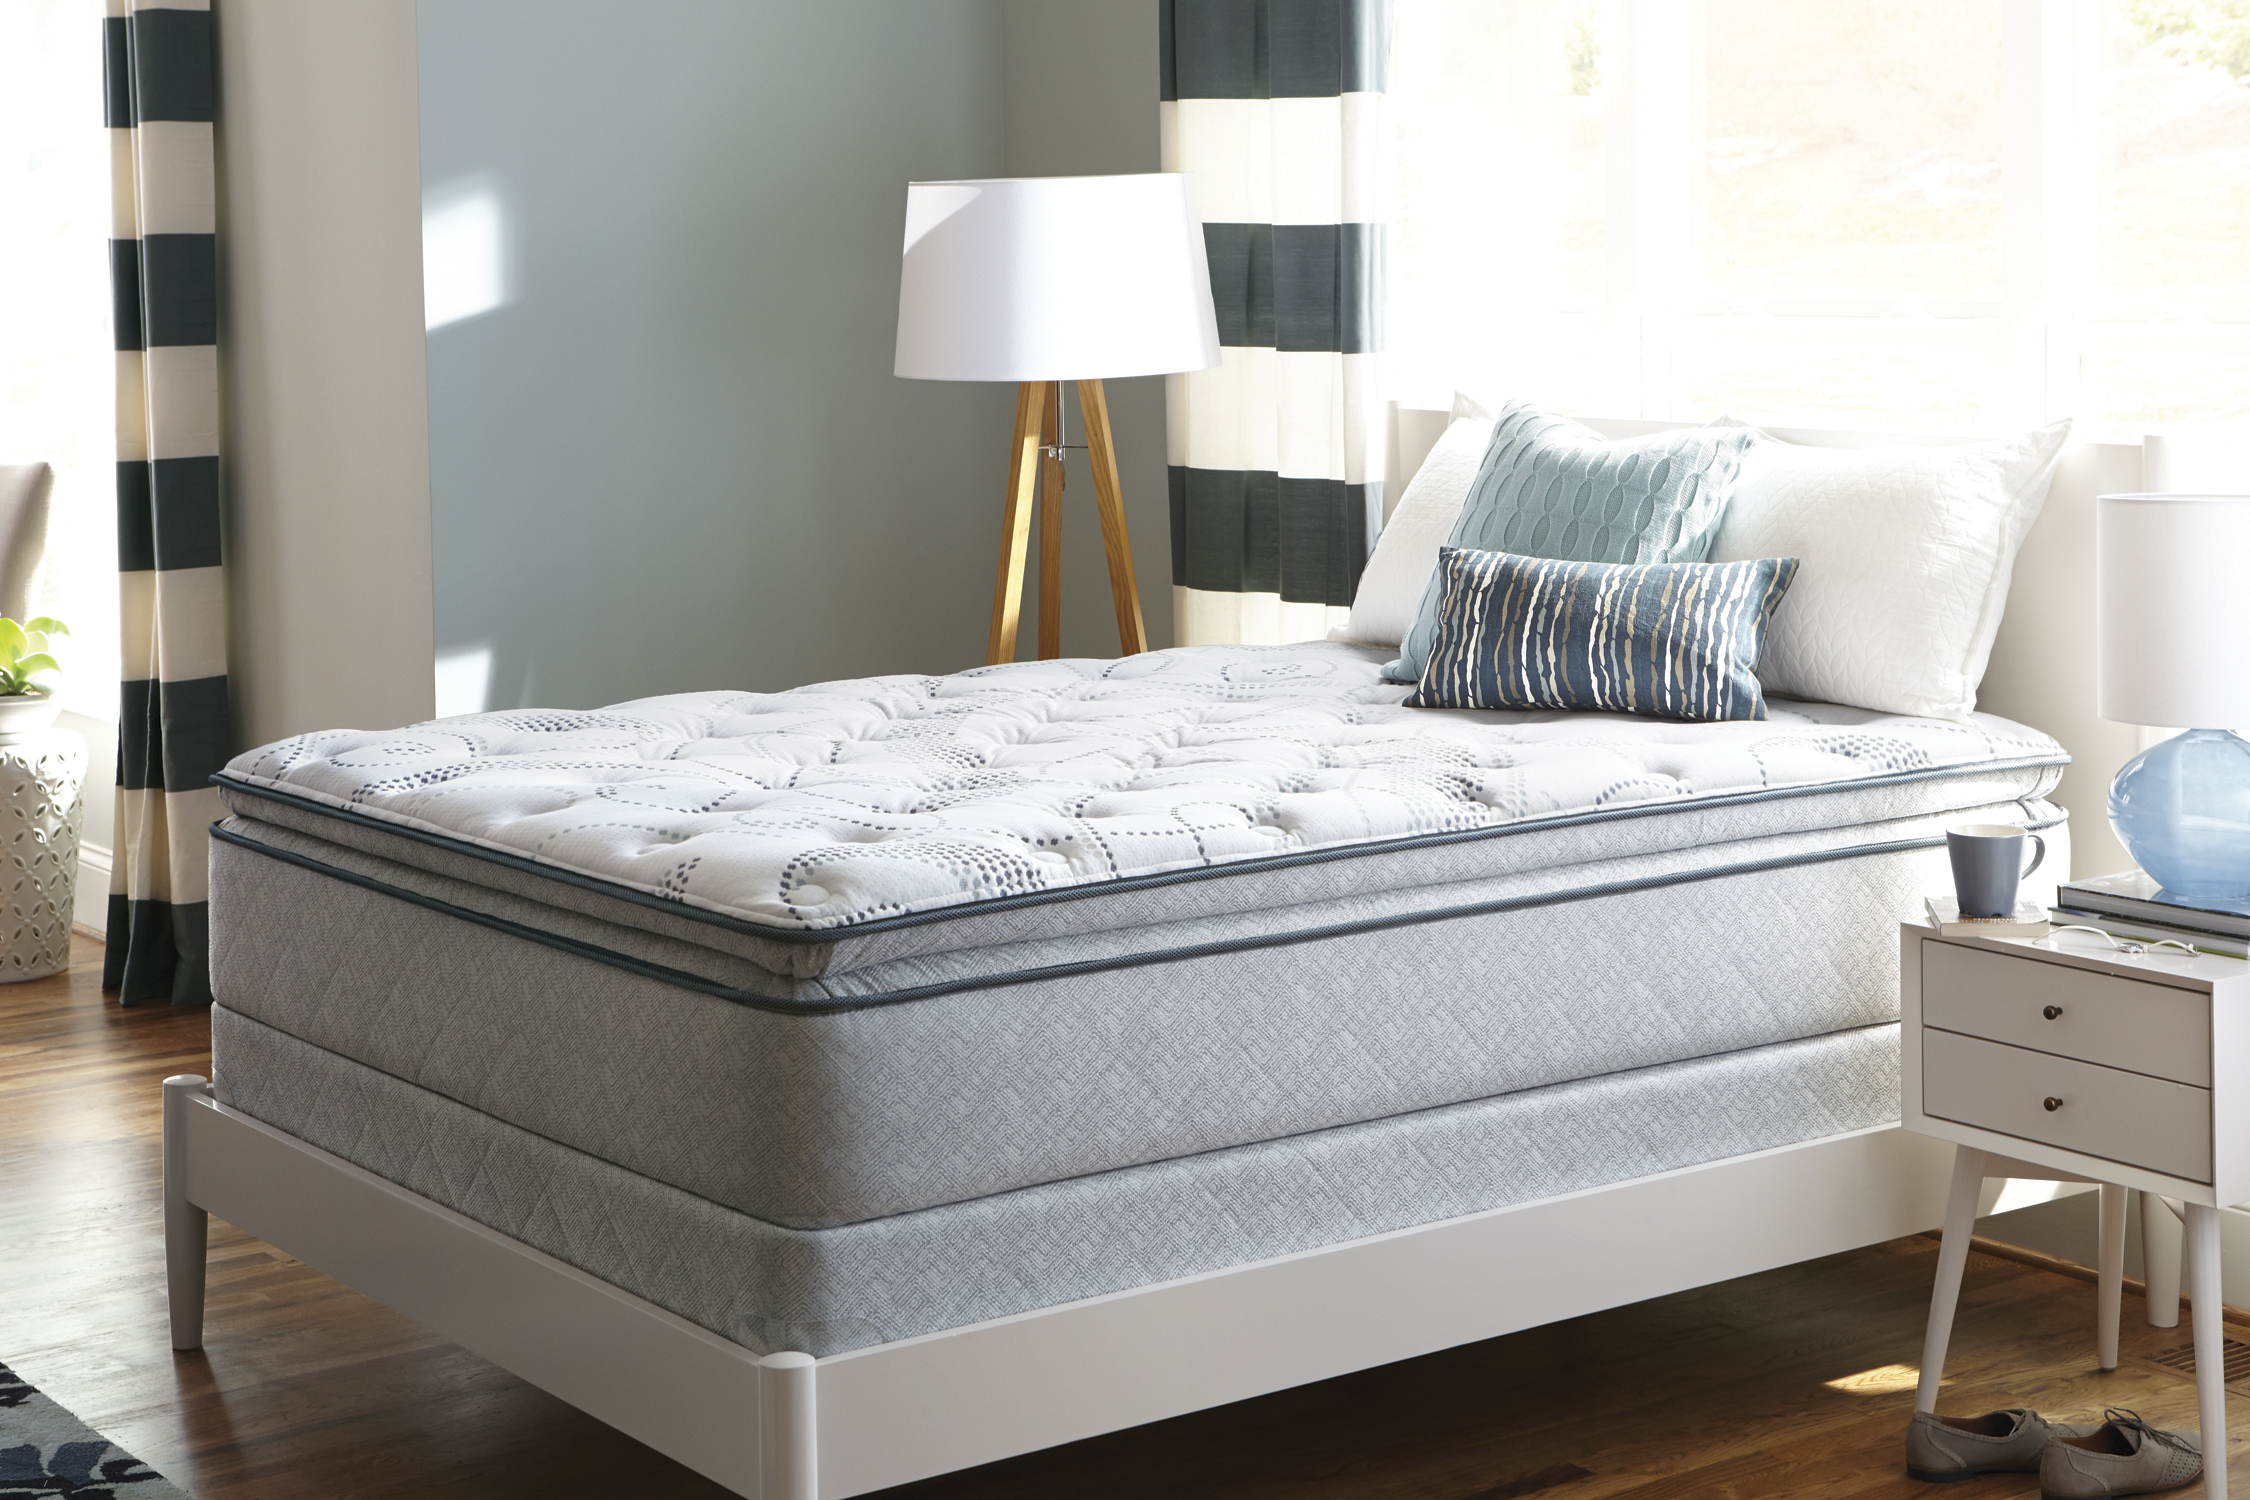 Pillow top mattress from Mattress for LESS in Newington.